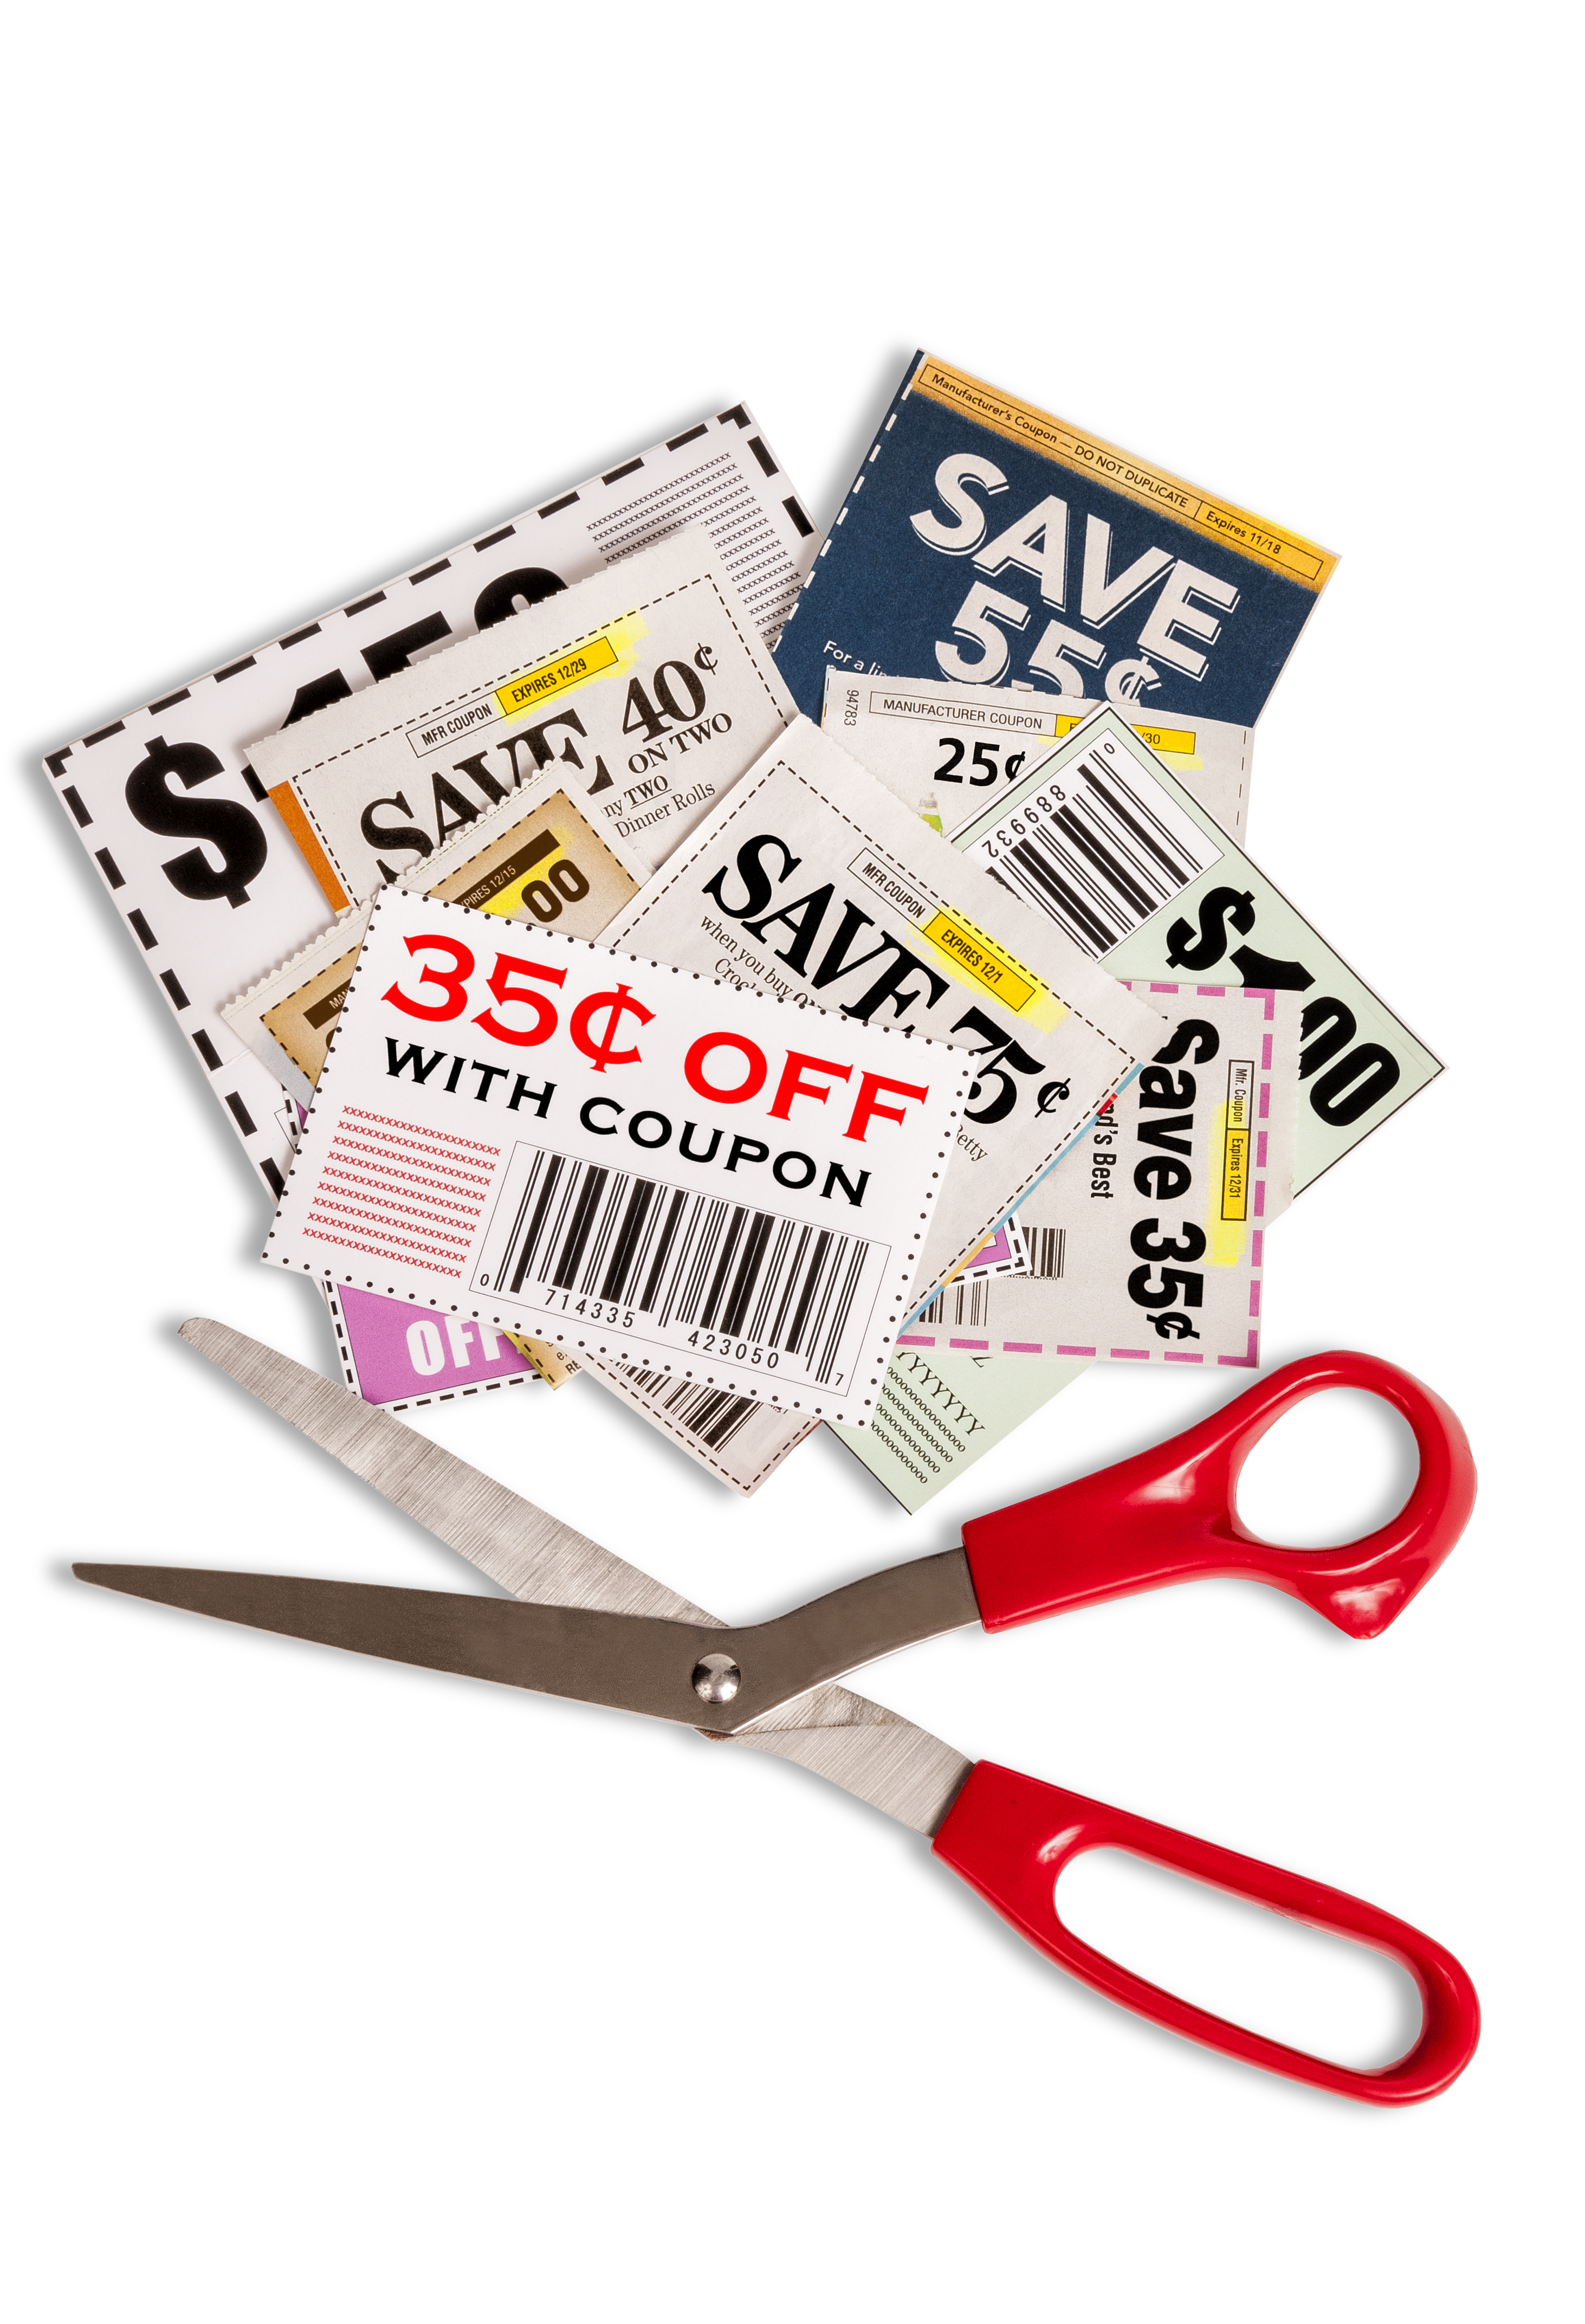 Can You Make Money Selling Coupons?